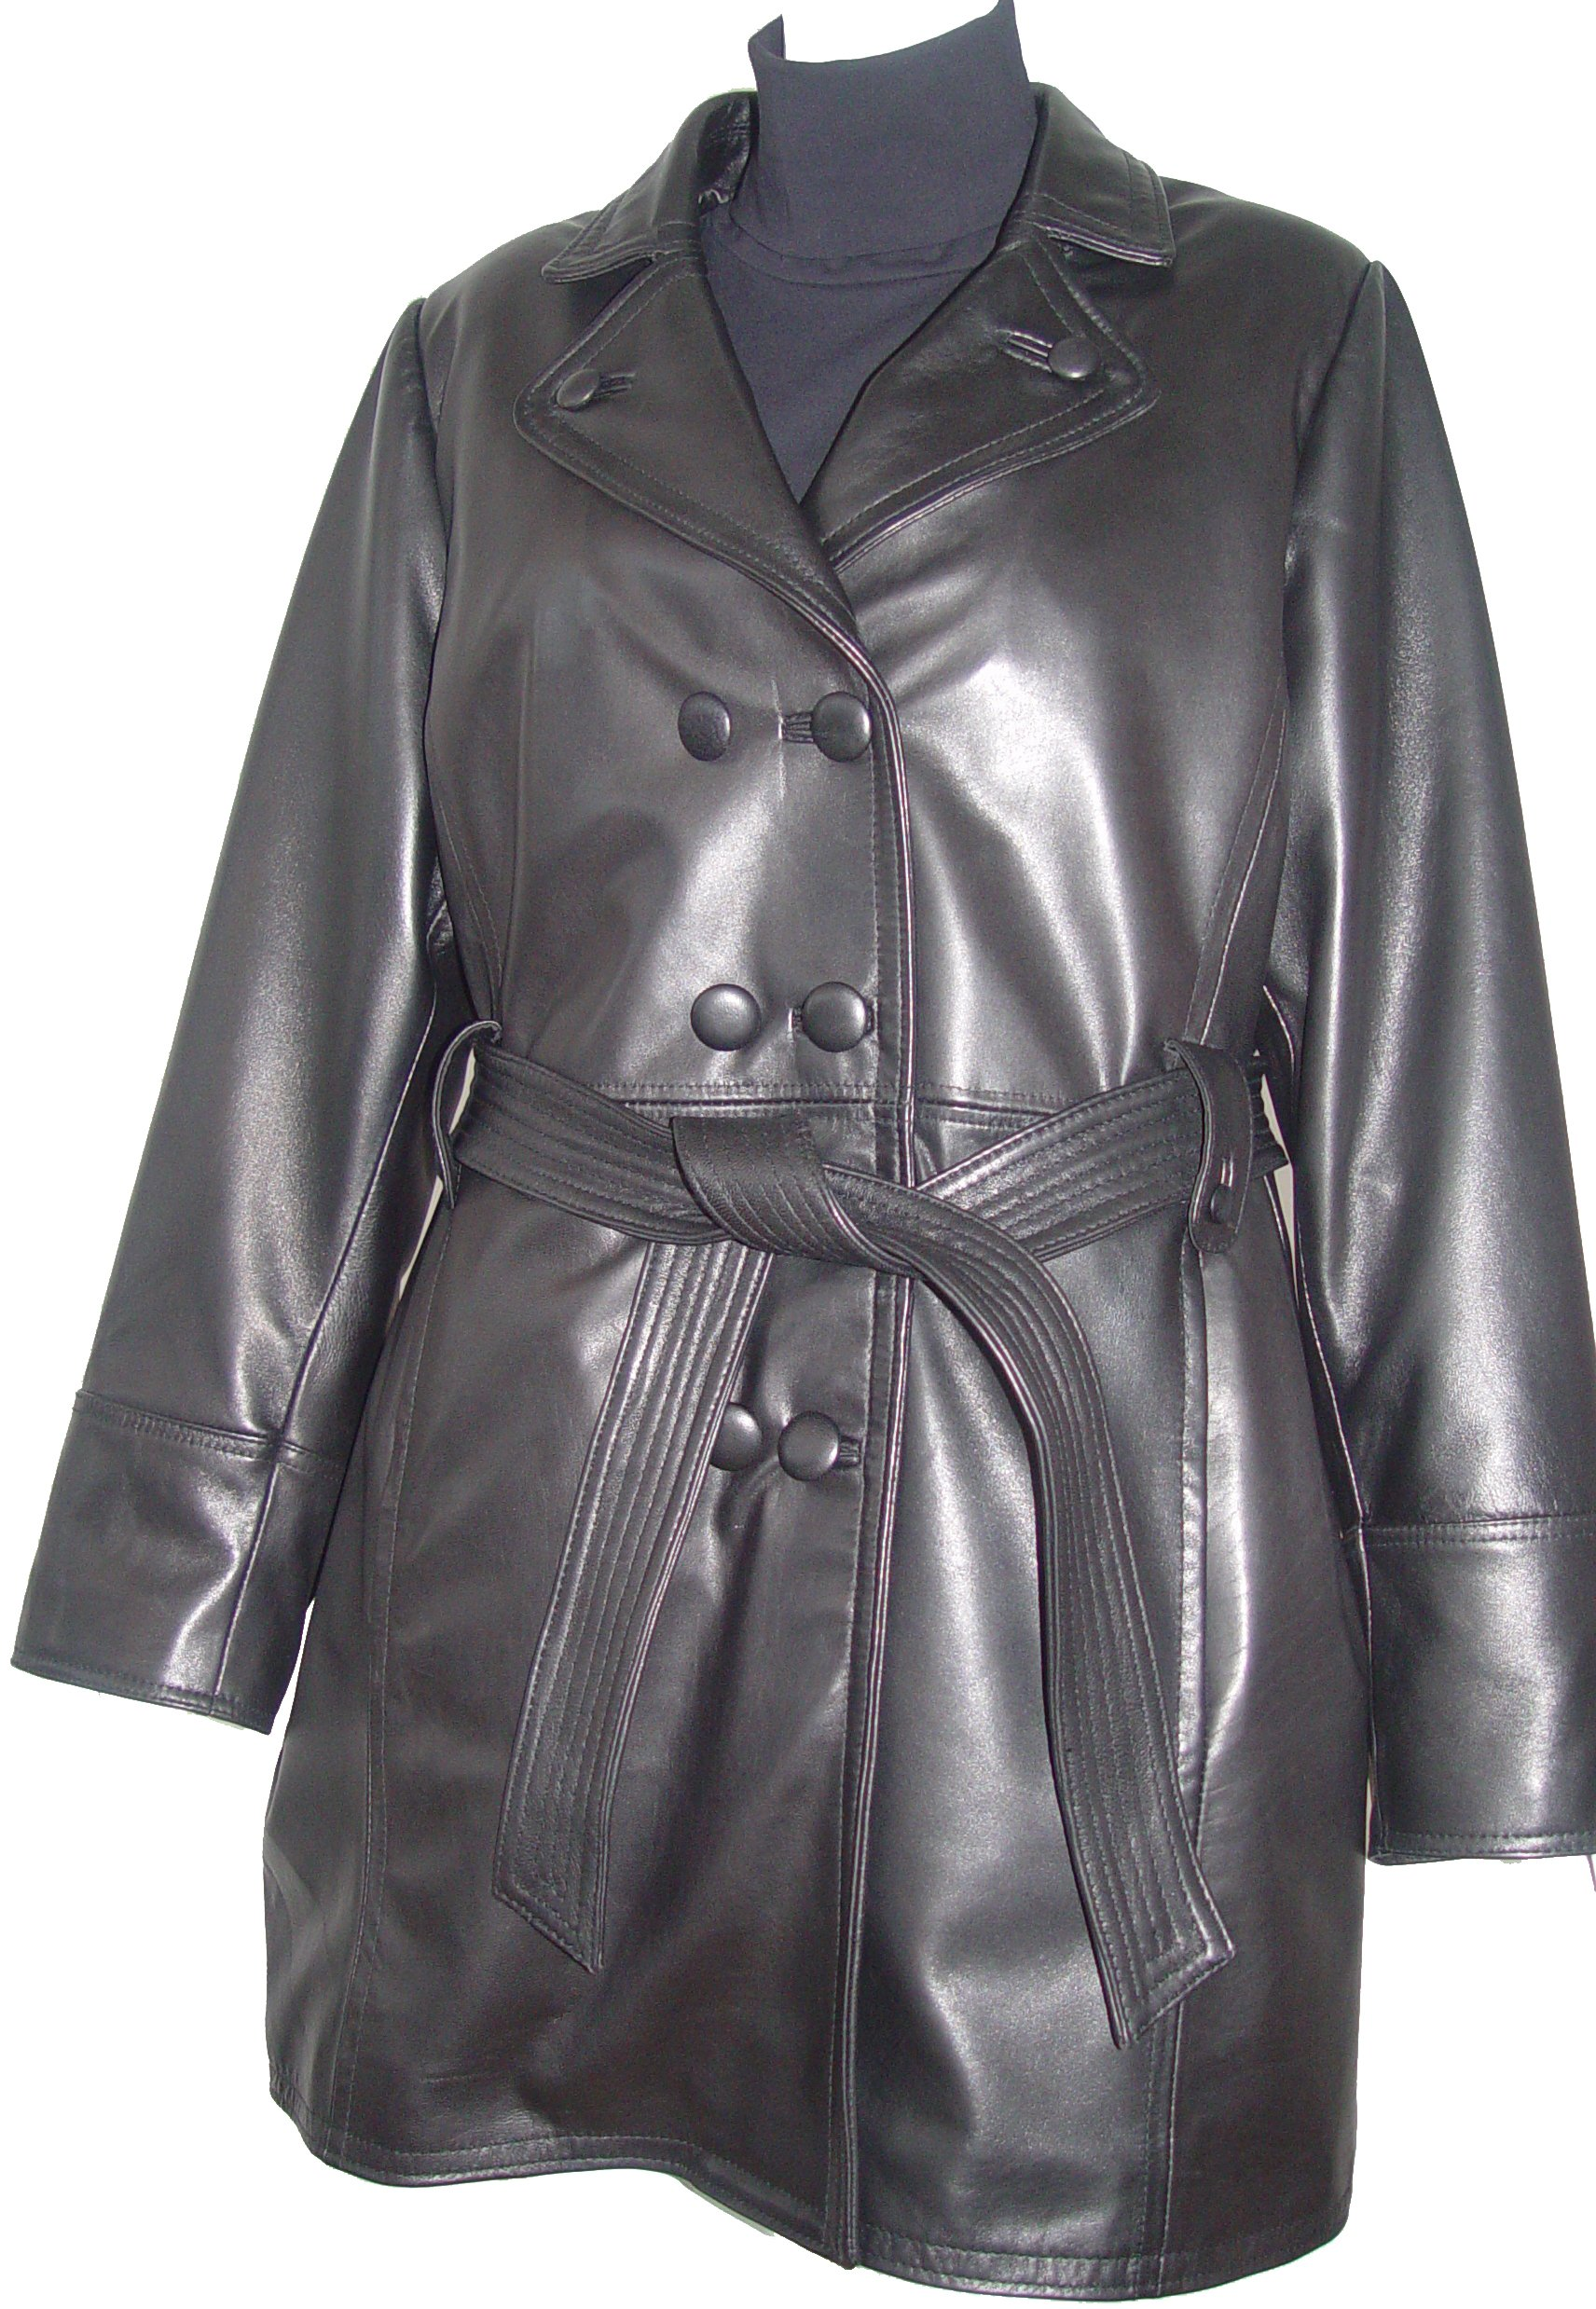 Paccilo 5006 Classic Leather Trench Coats Womens Business Clothing Soft Lamb